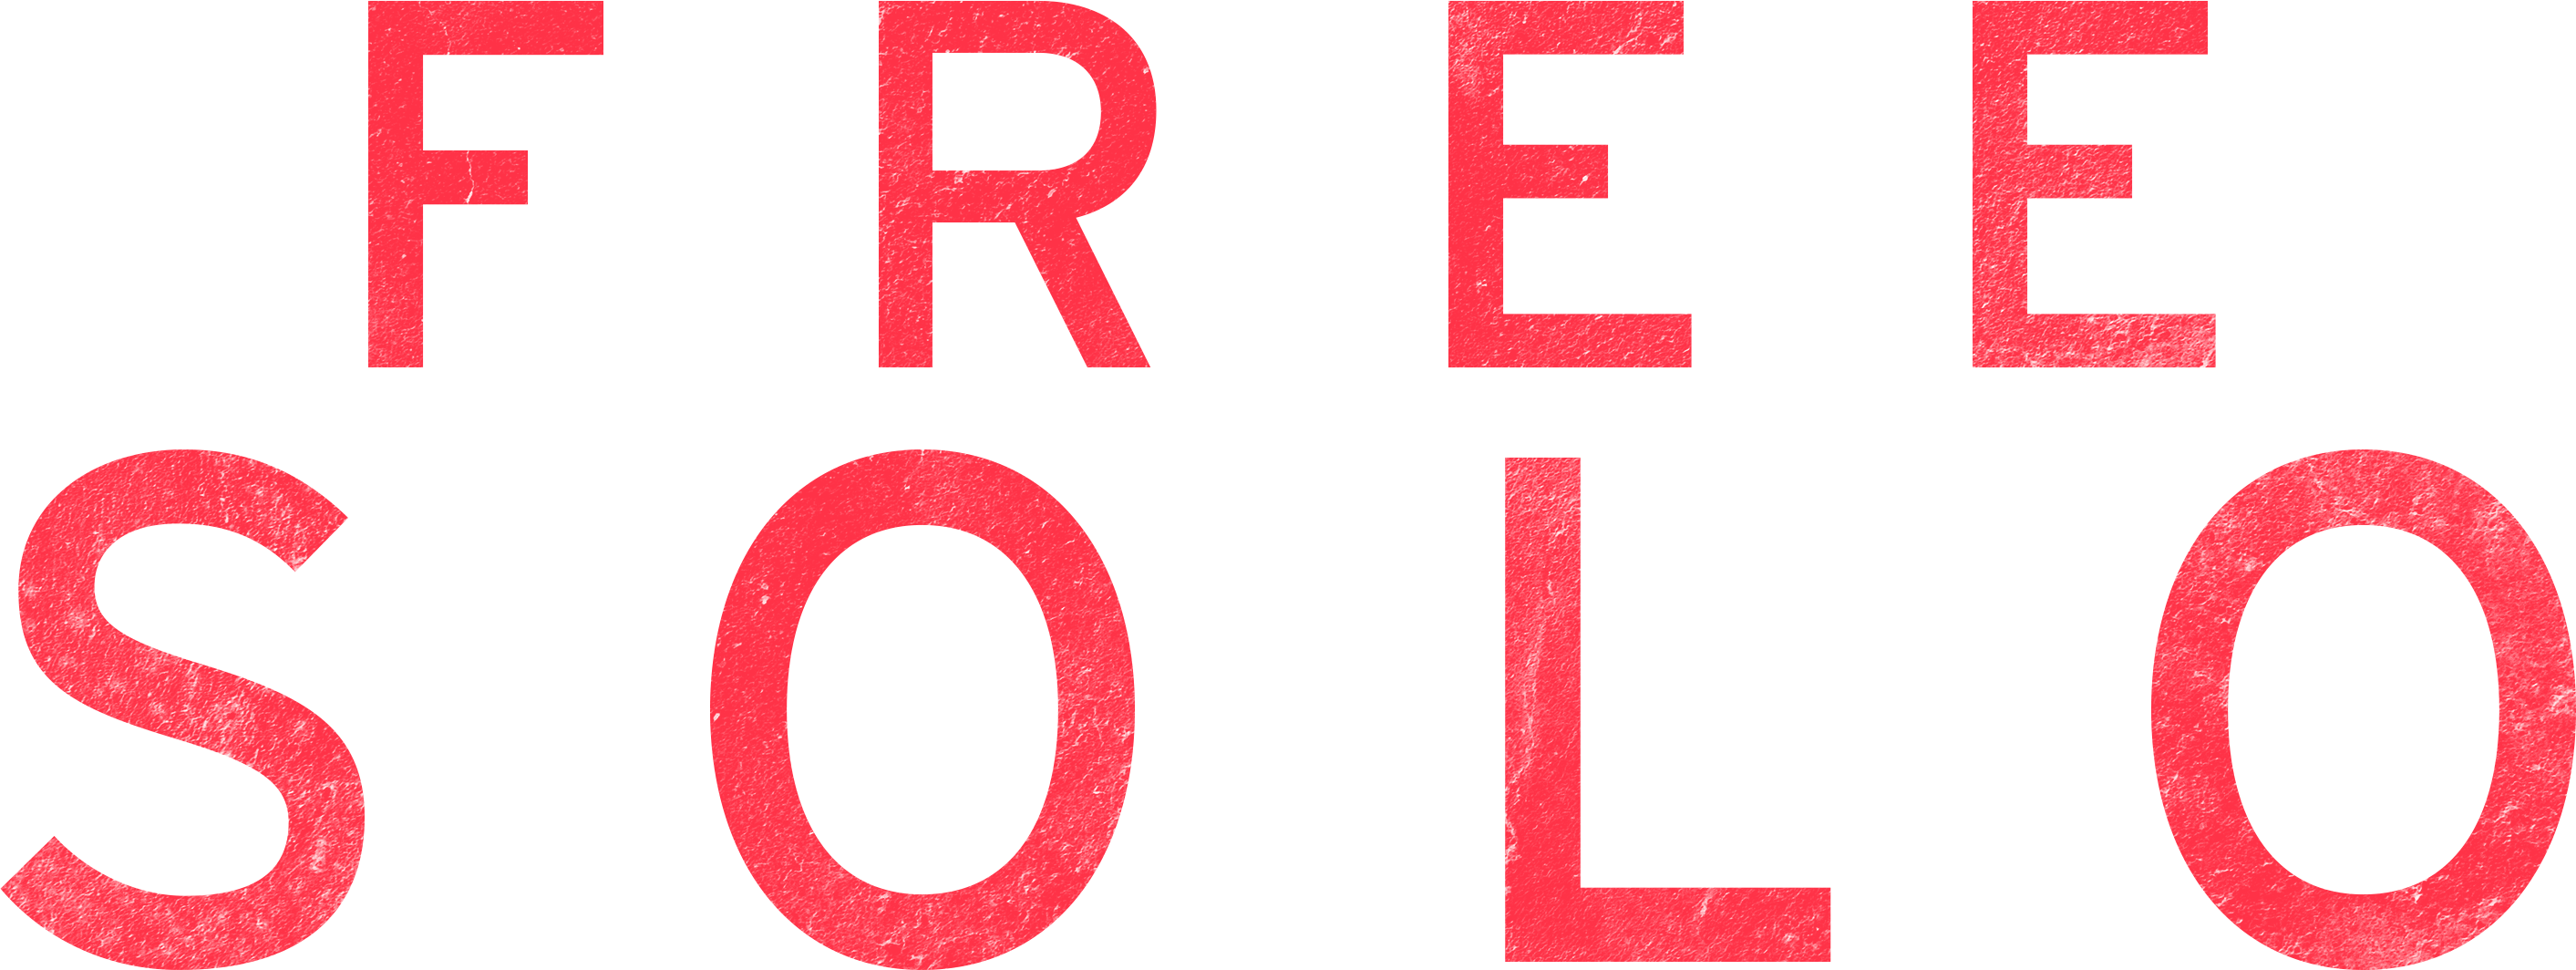 freesolo red texture logo